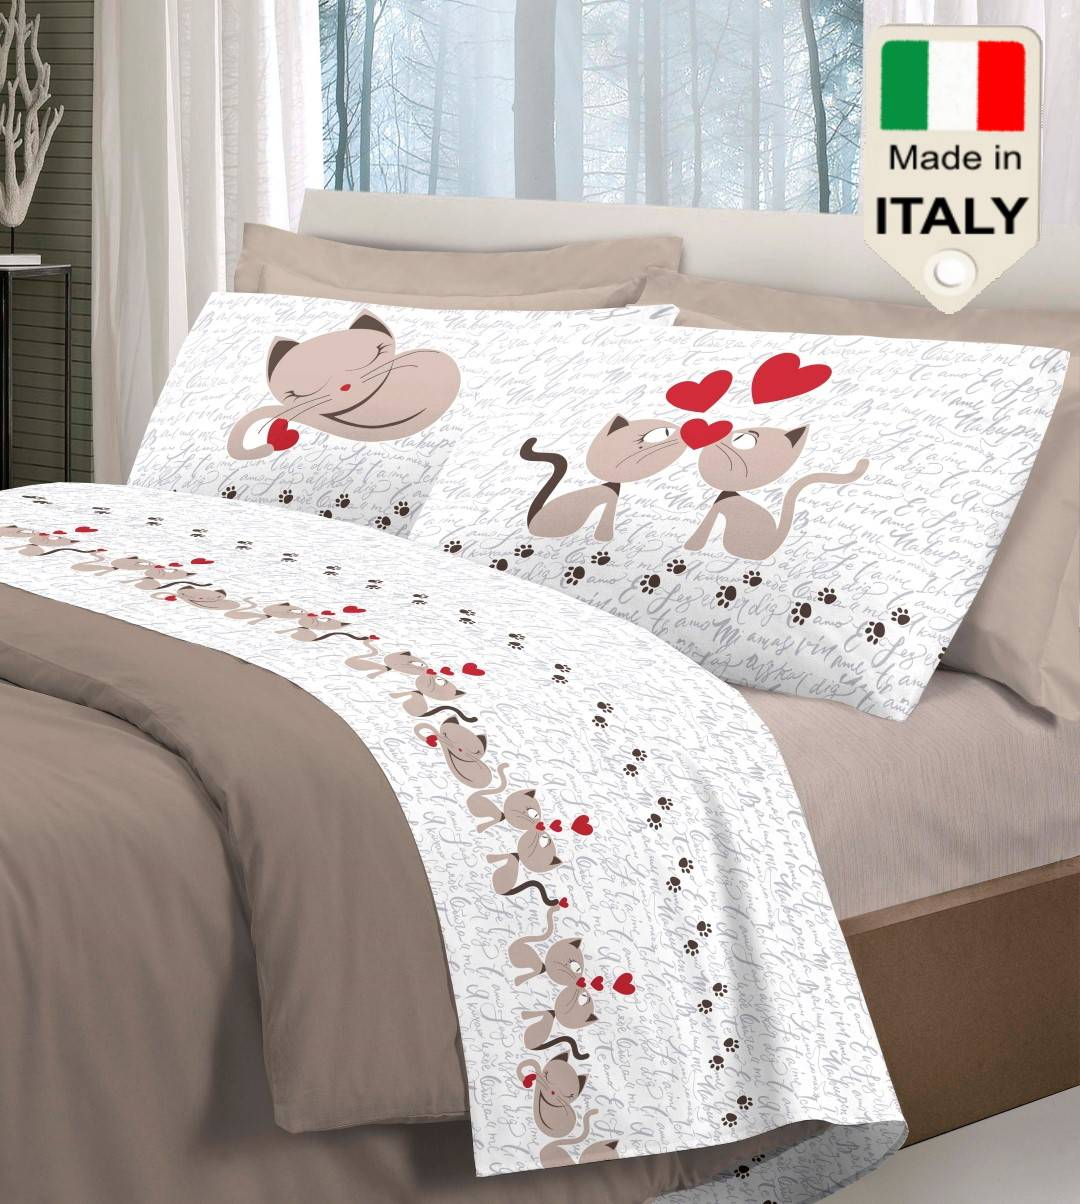 Completo Lenzuola Letto Made In Italy